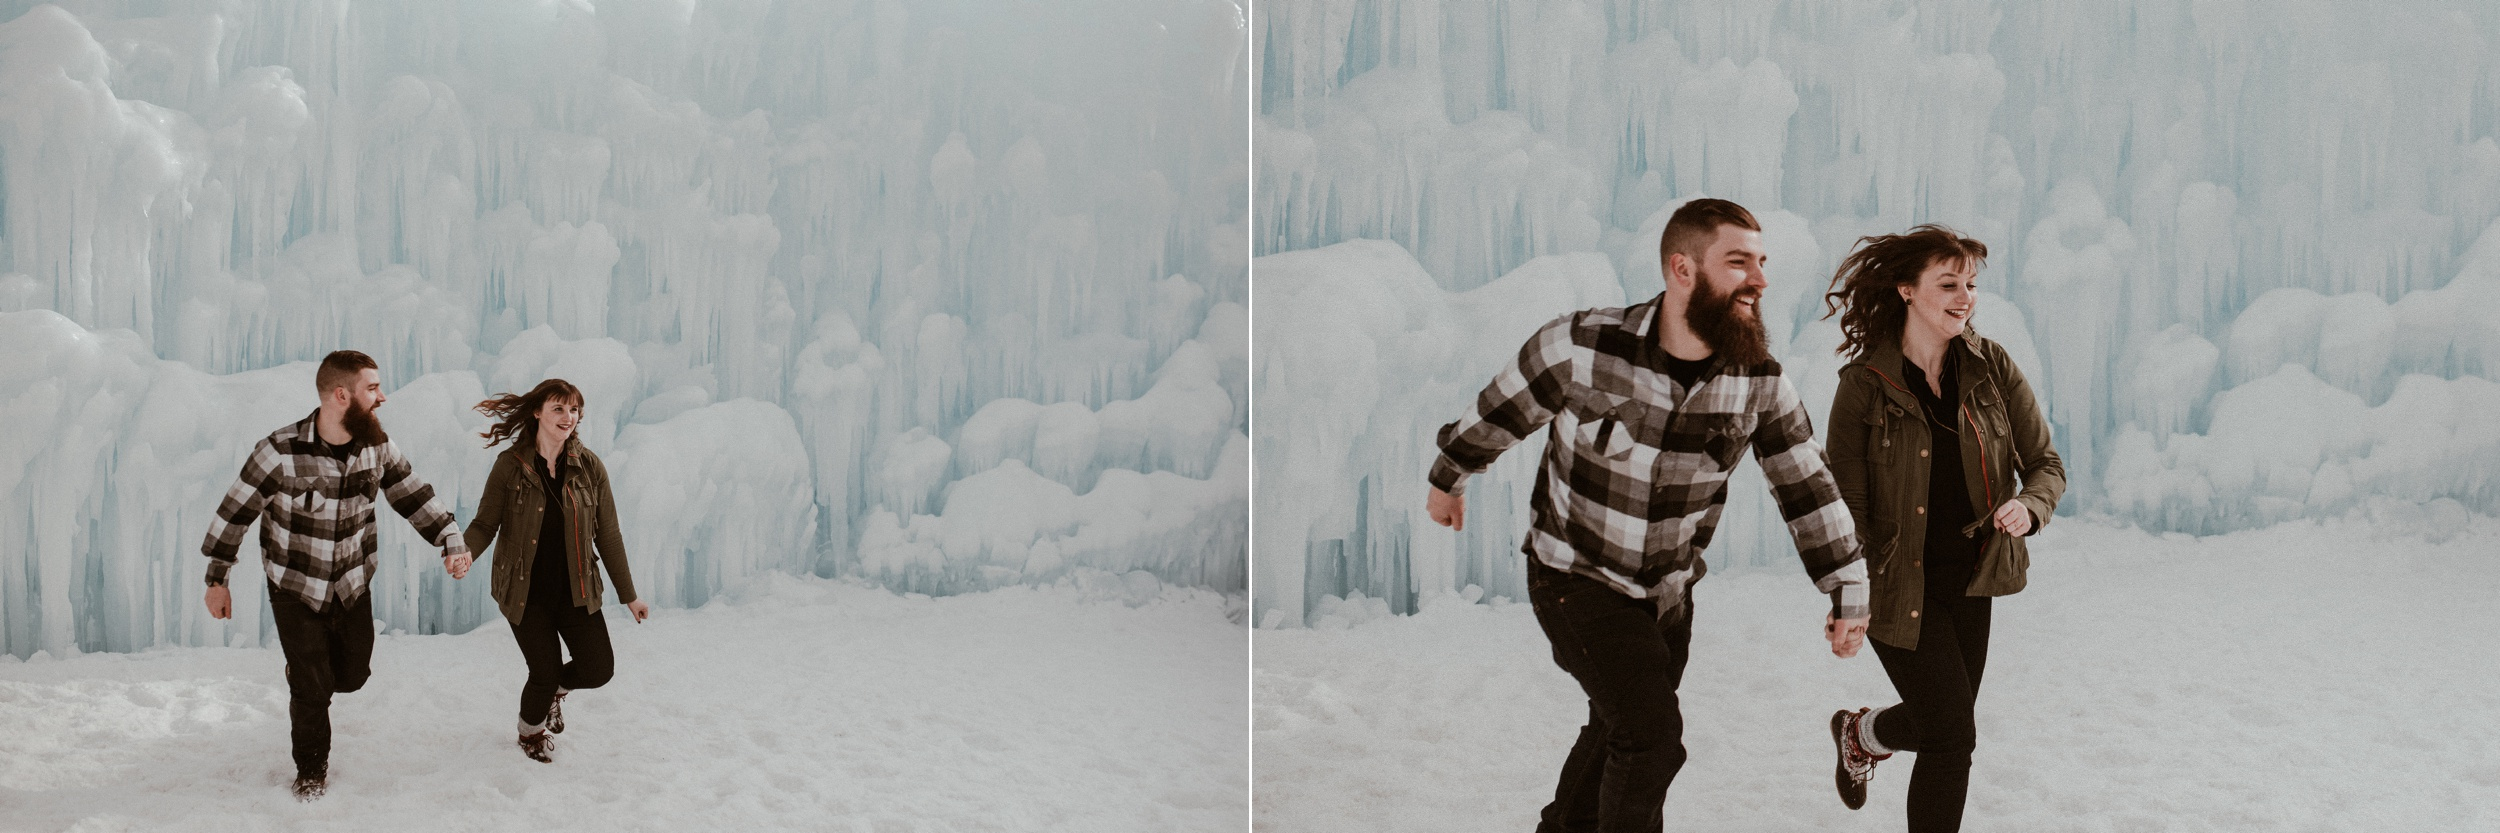 ice-castles-nh-engagement-session-boston-wedding-photographer-vanessa-alves-photography25.jpg